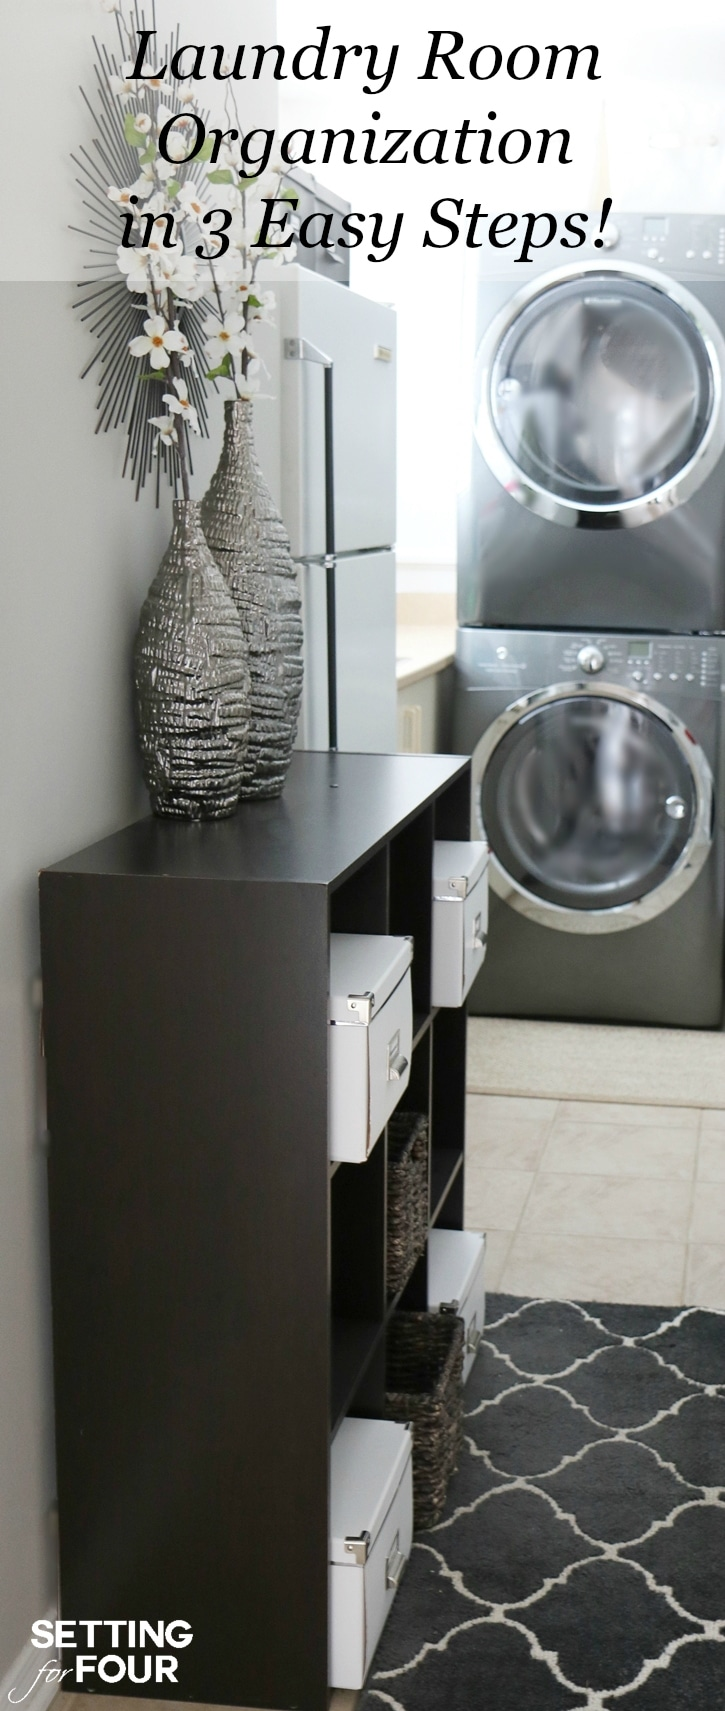 Laundry Room Organization in 3 Easy Steps